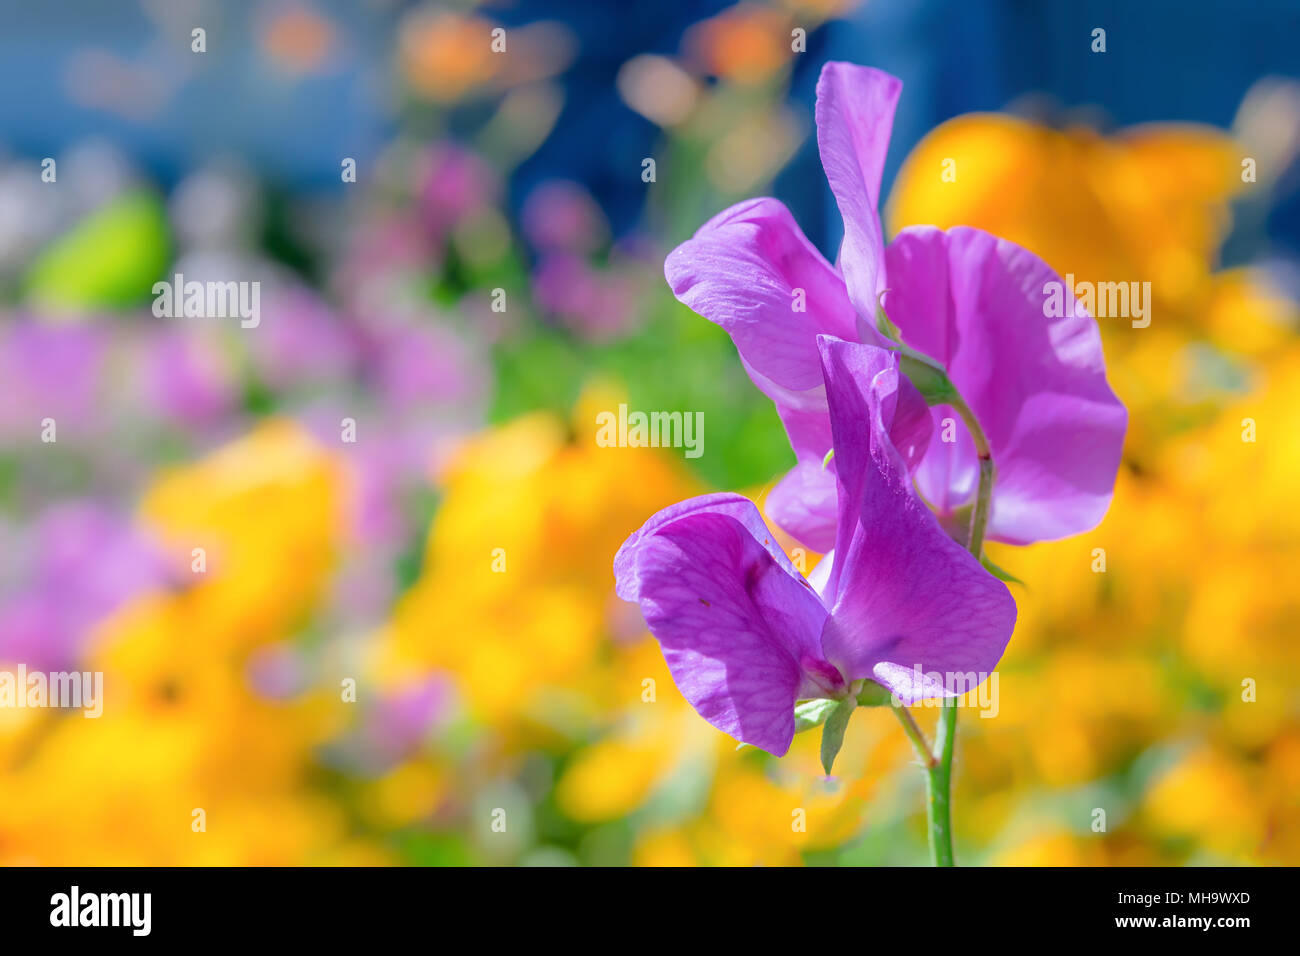 Purple sweet pea  flower photographed with a specialty lens to get shallow depth of field and dreamy background. Stock Photo